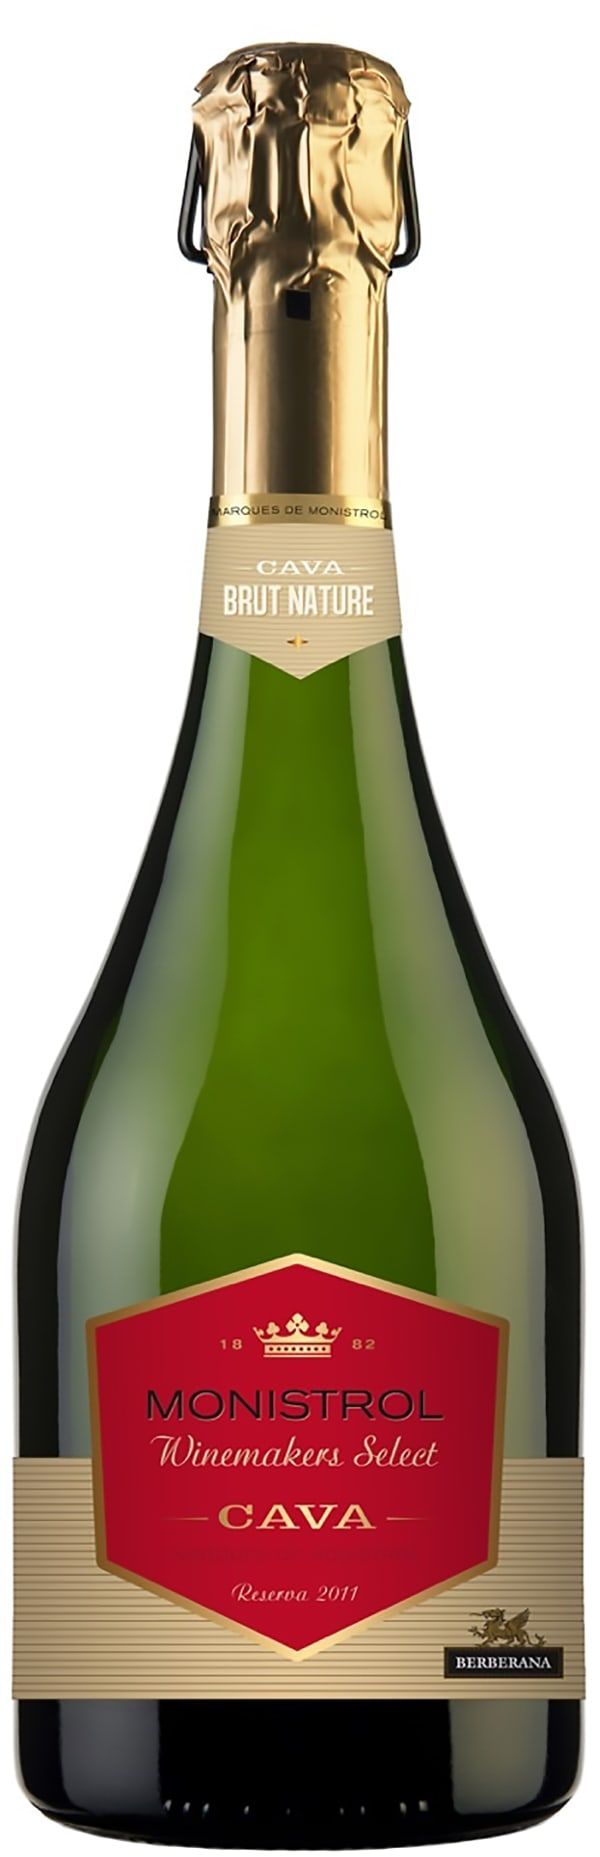 Monistrol Winemakers Select Cava Brut 2013